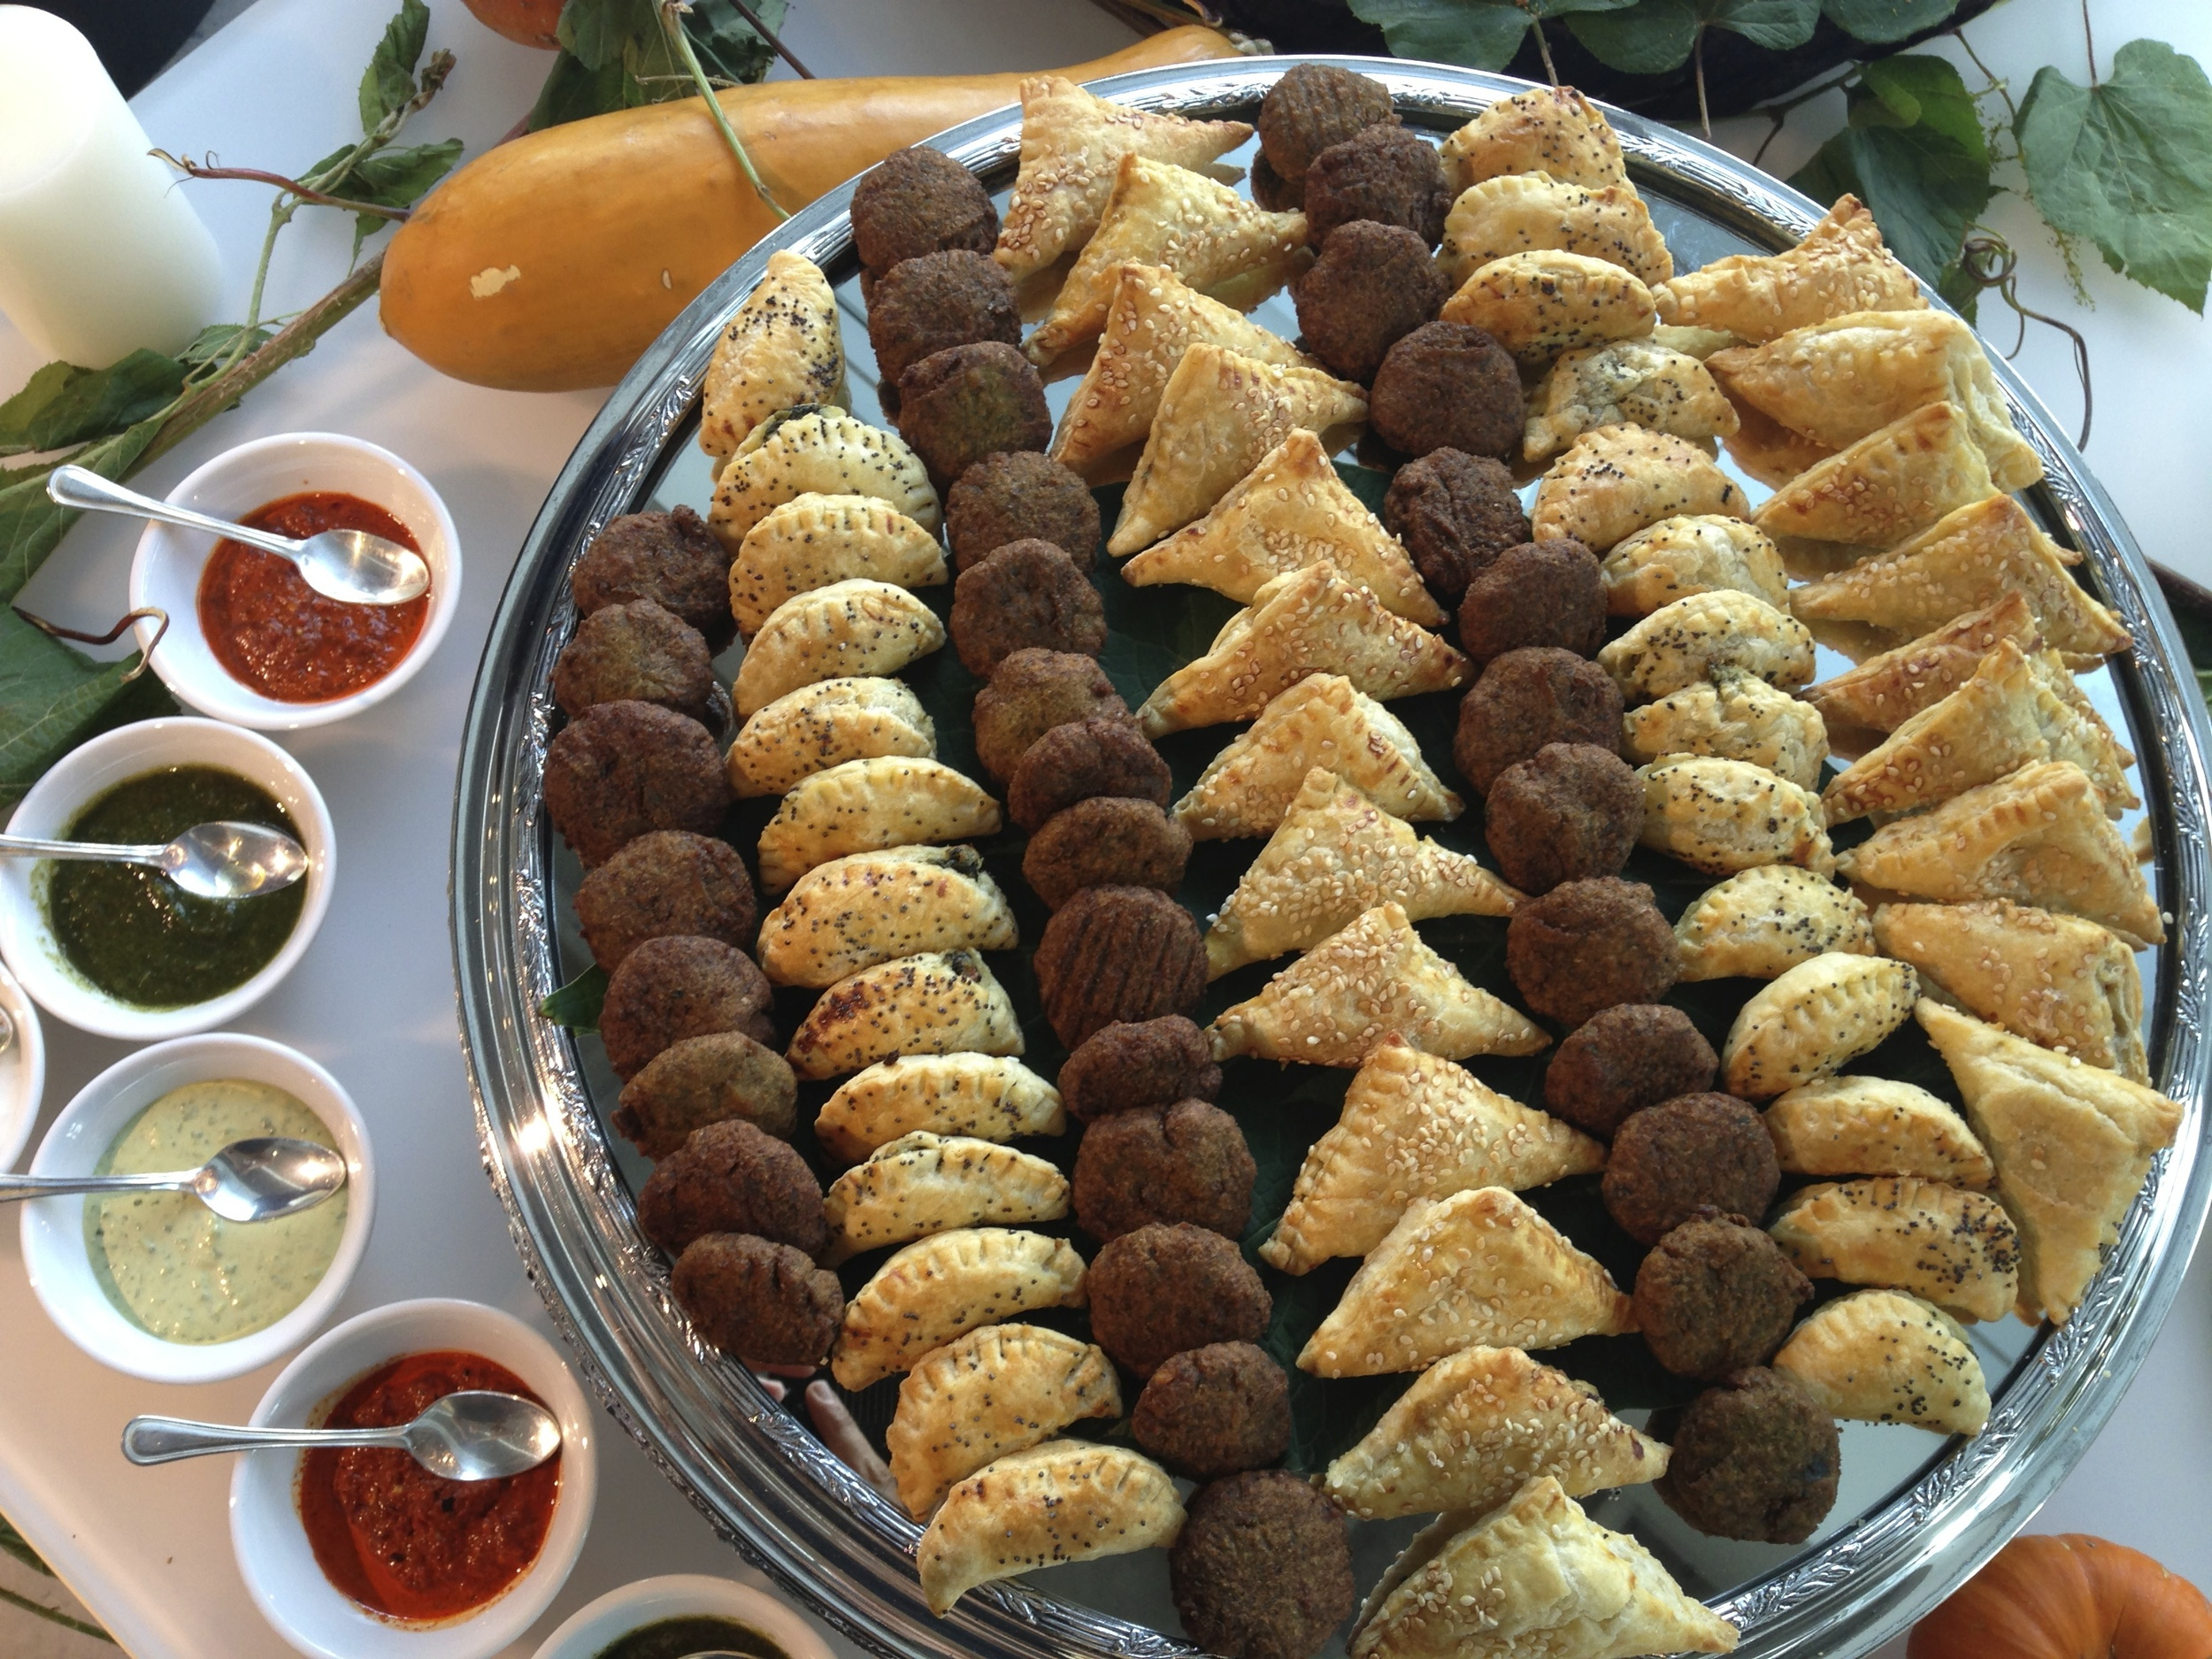 Falafel and Burekas with assorted dips